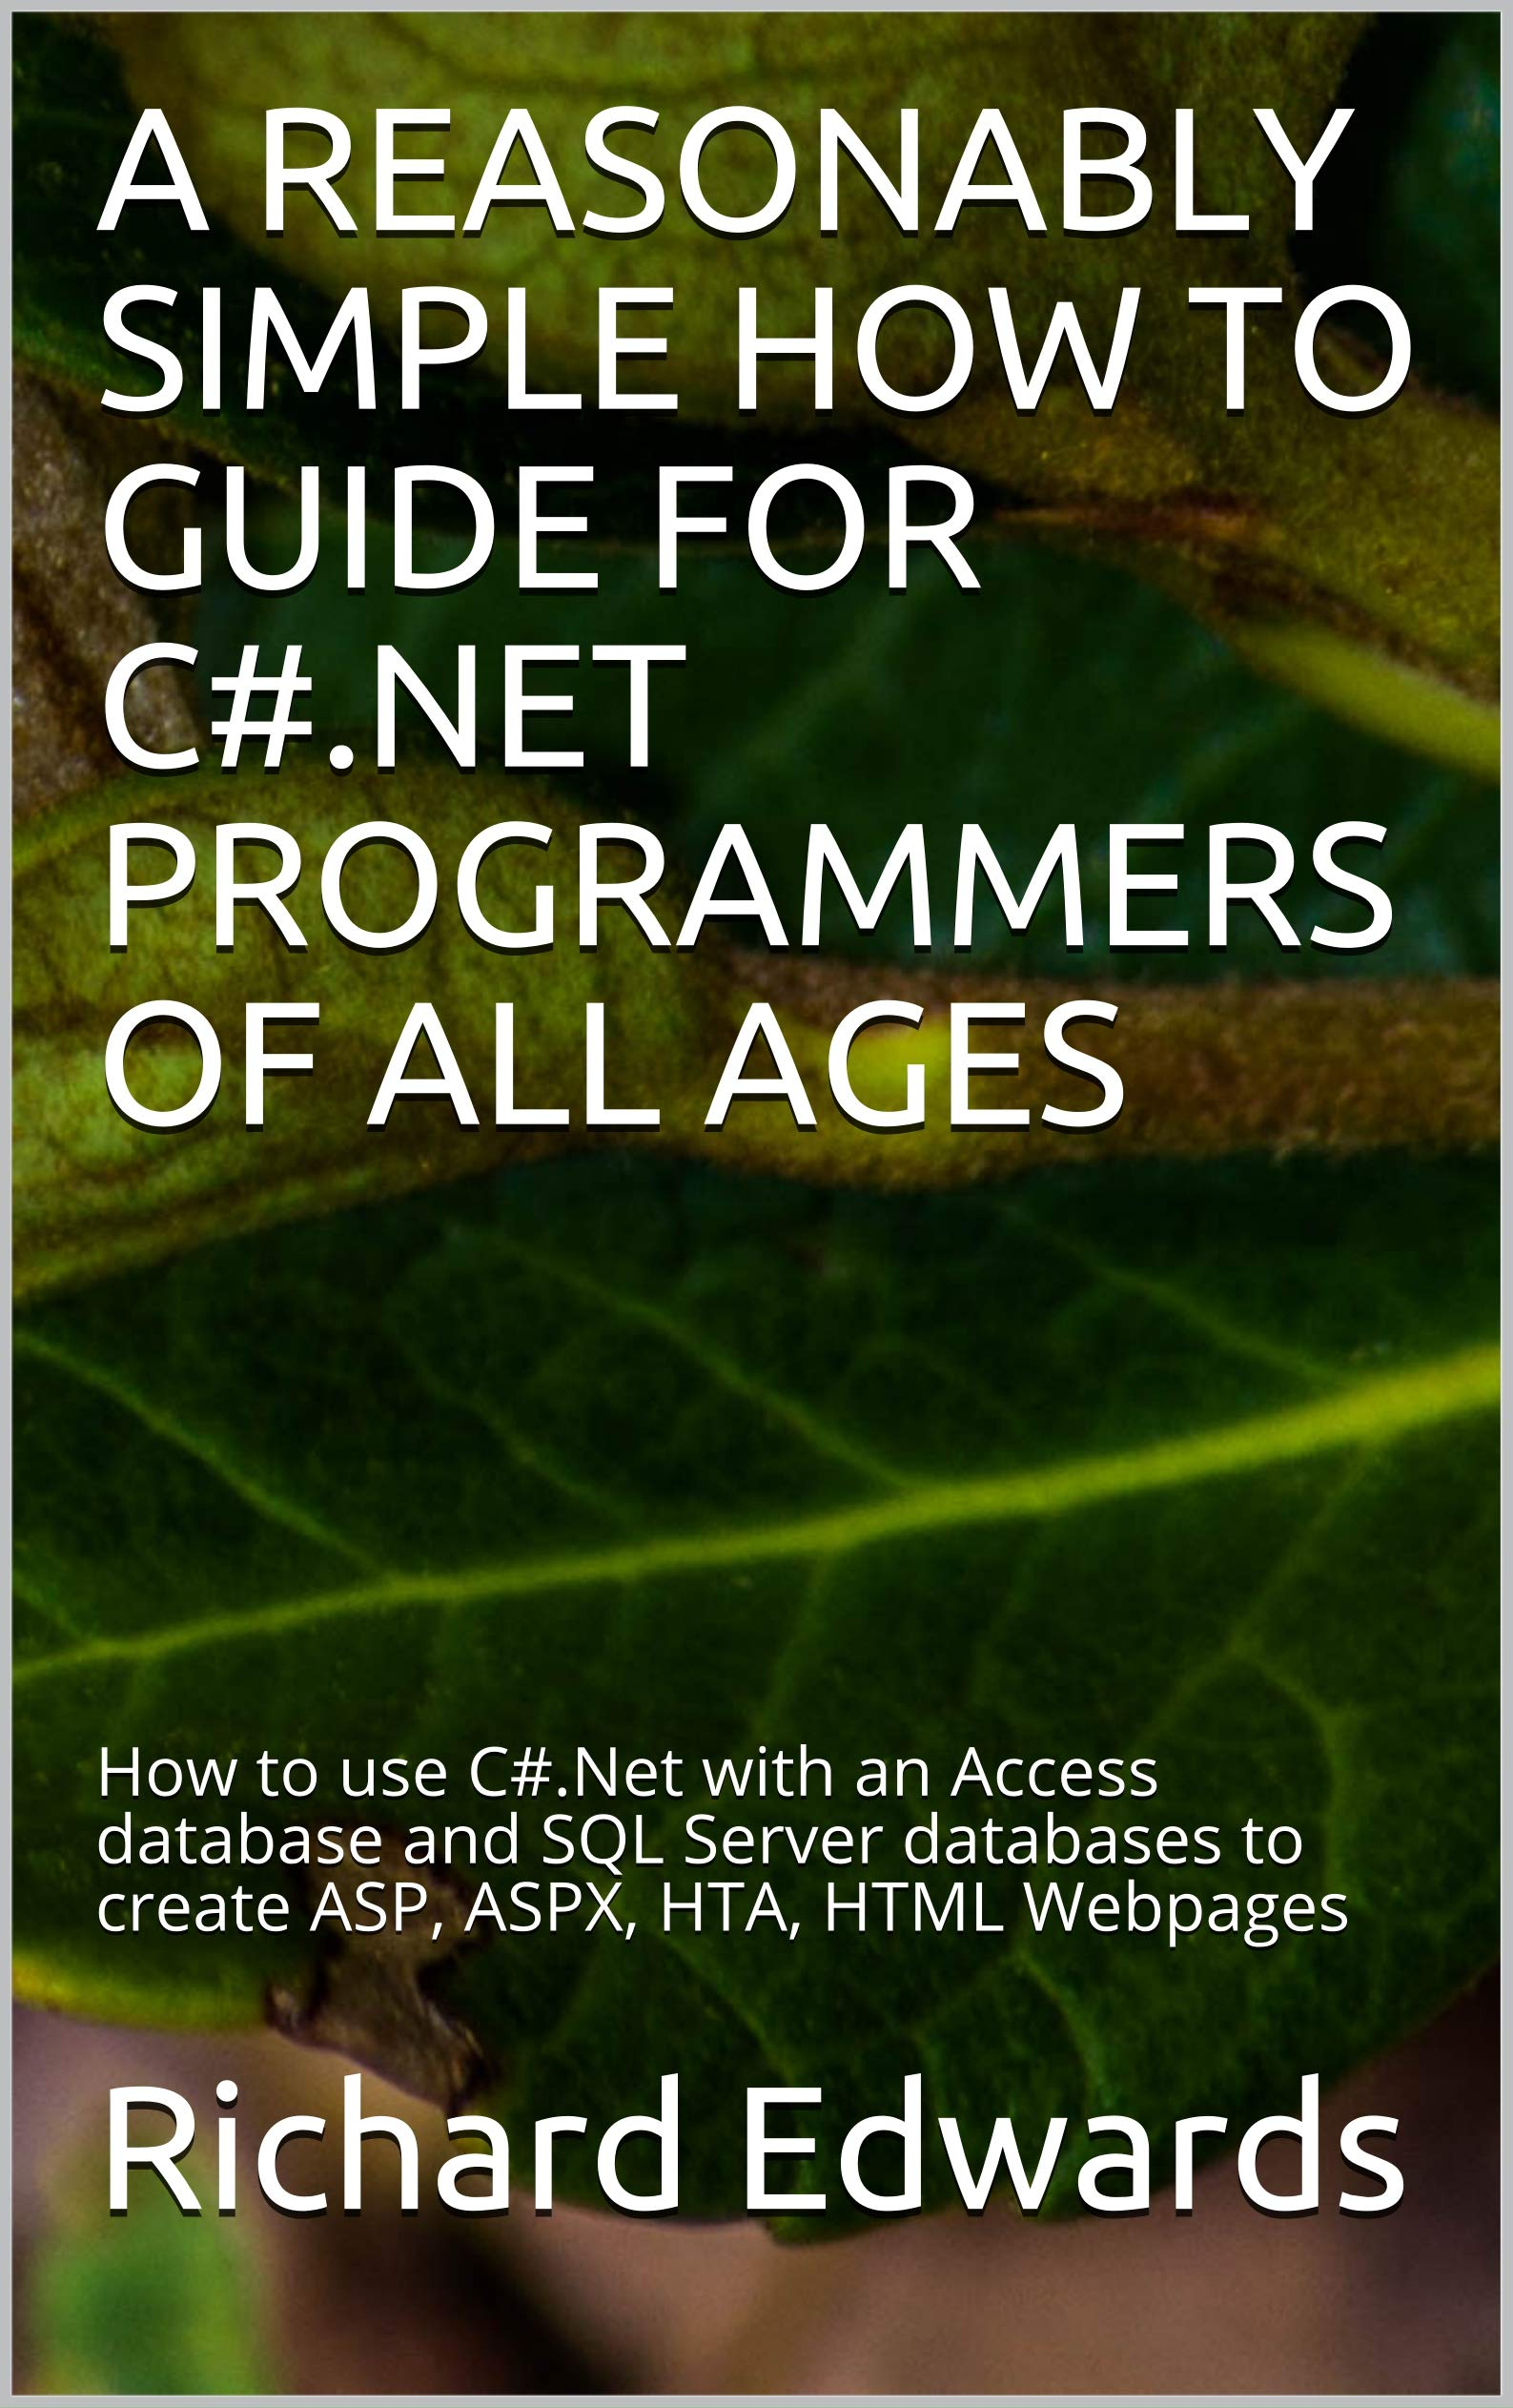 A REASONABLY SIMPLE HOW TO GUIDE FOR C#.NET PROGRAMMERS OF ALL AGES: How to use C#.Net with an Access database and SQL Server databases to create ASP, ASPX, HTA, HTML Webpages